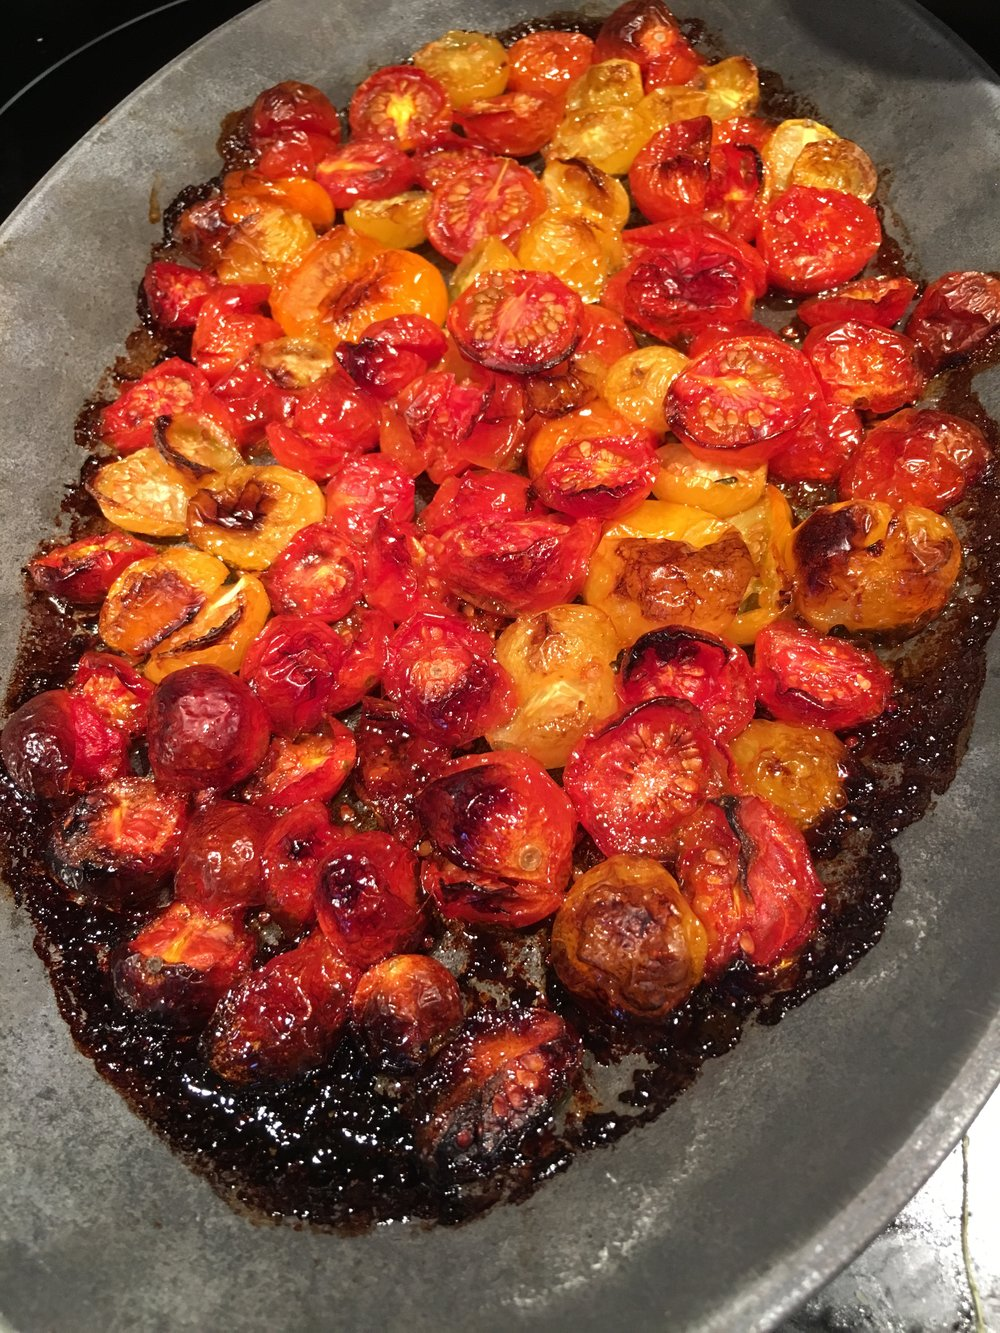 ©Roasted Tomatoes by Susan Reid